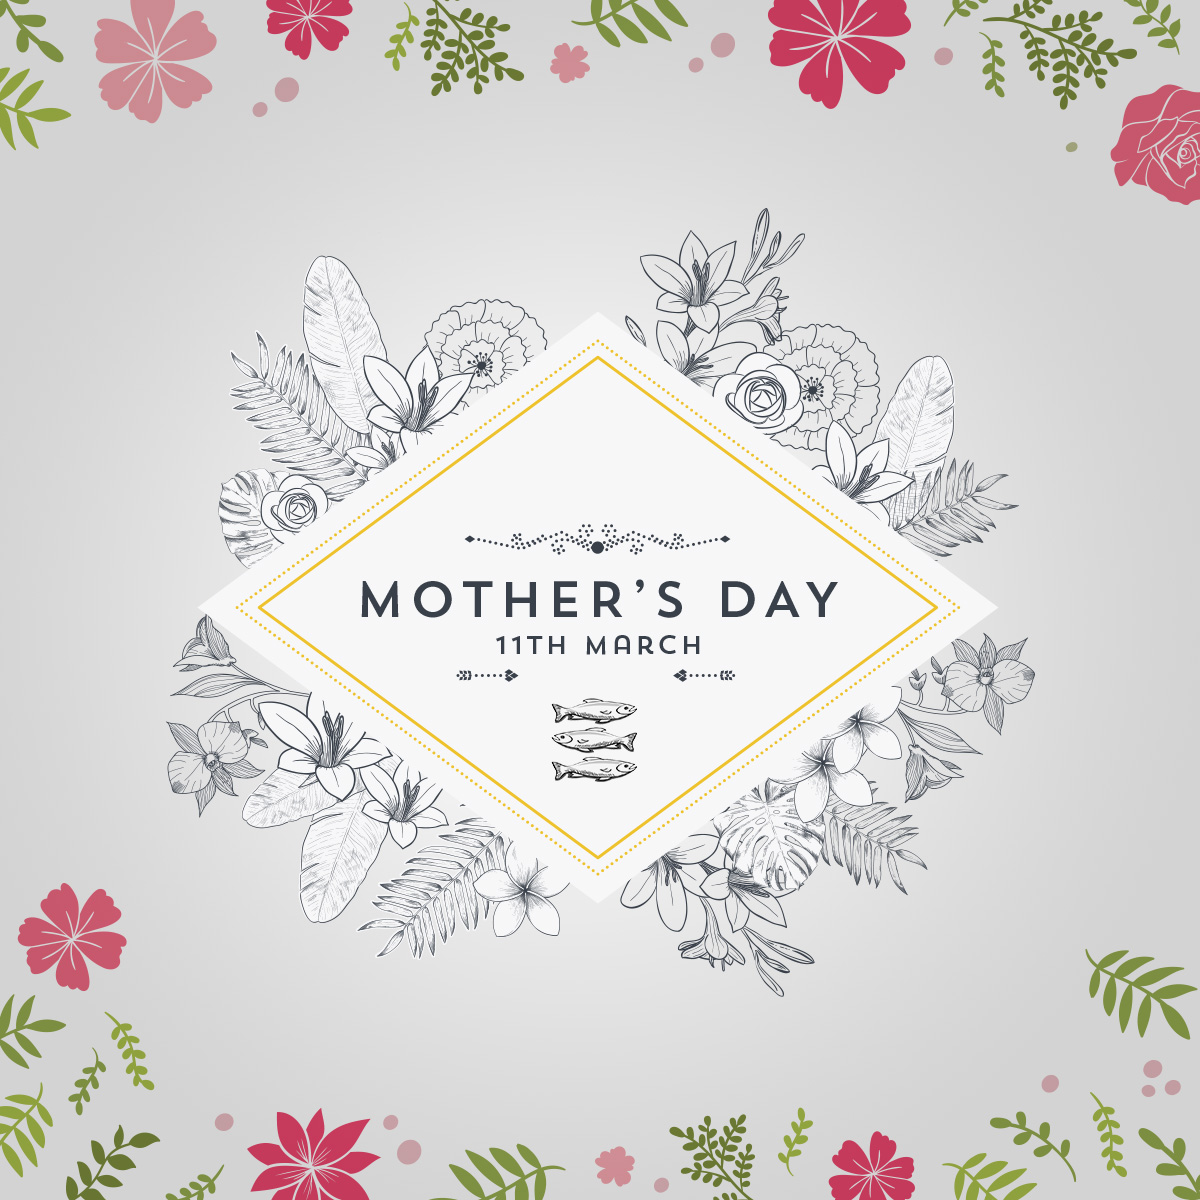 Mother's Day - Kindle edition by Ron Vincent. Download it once and read it on your Kindle device, PC, phones or tablets. Use features like bookmarks, note taking and highlighting while reading Mother's Day.